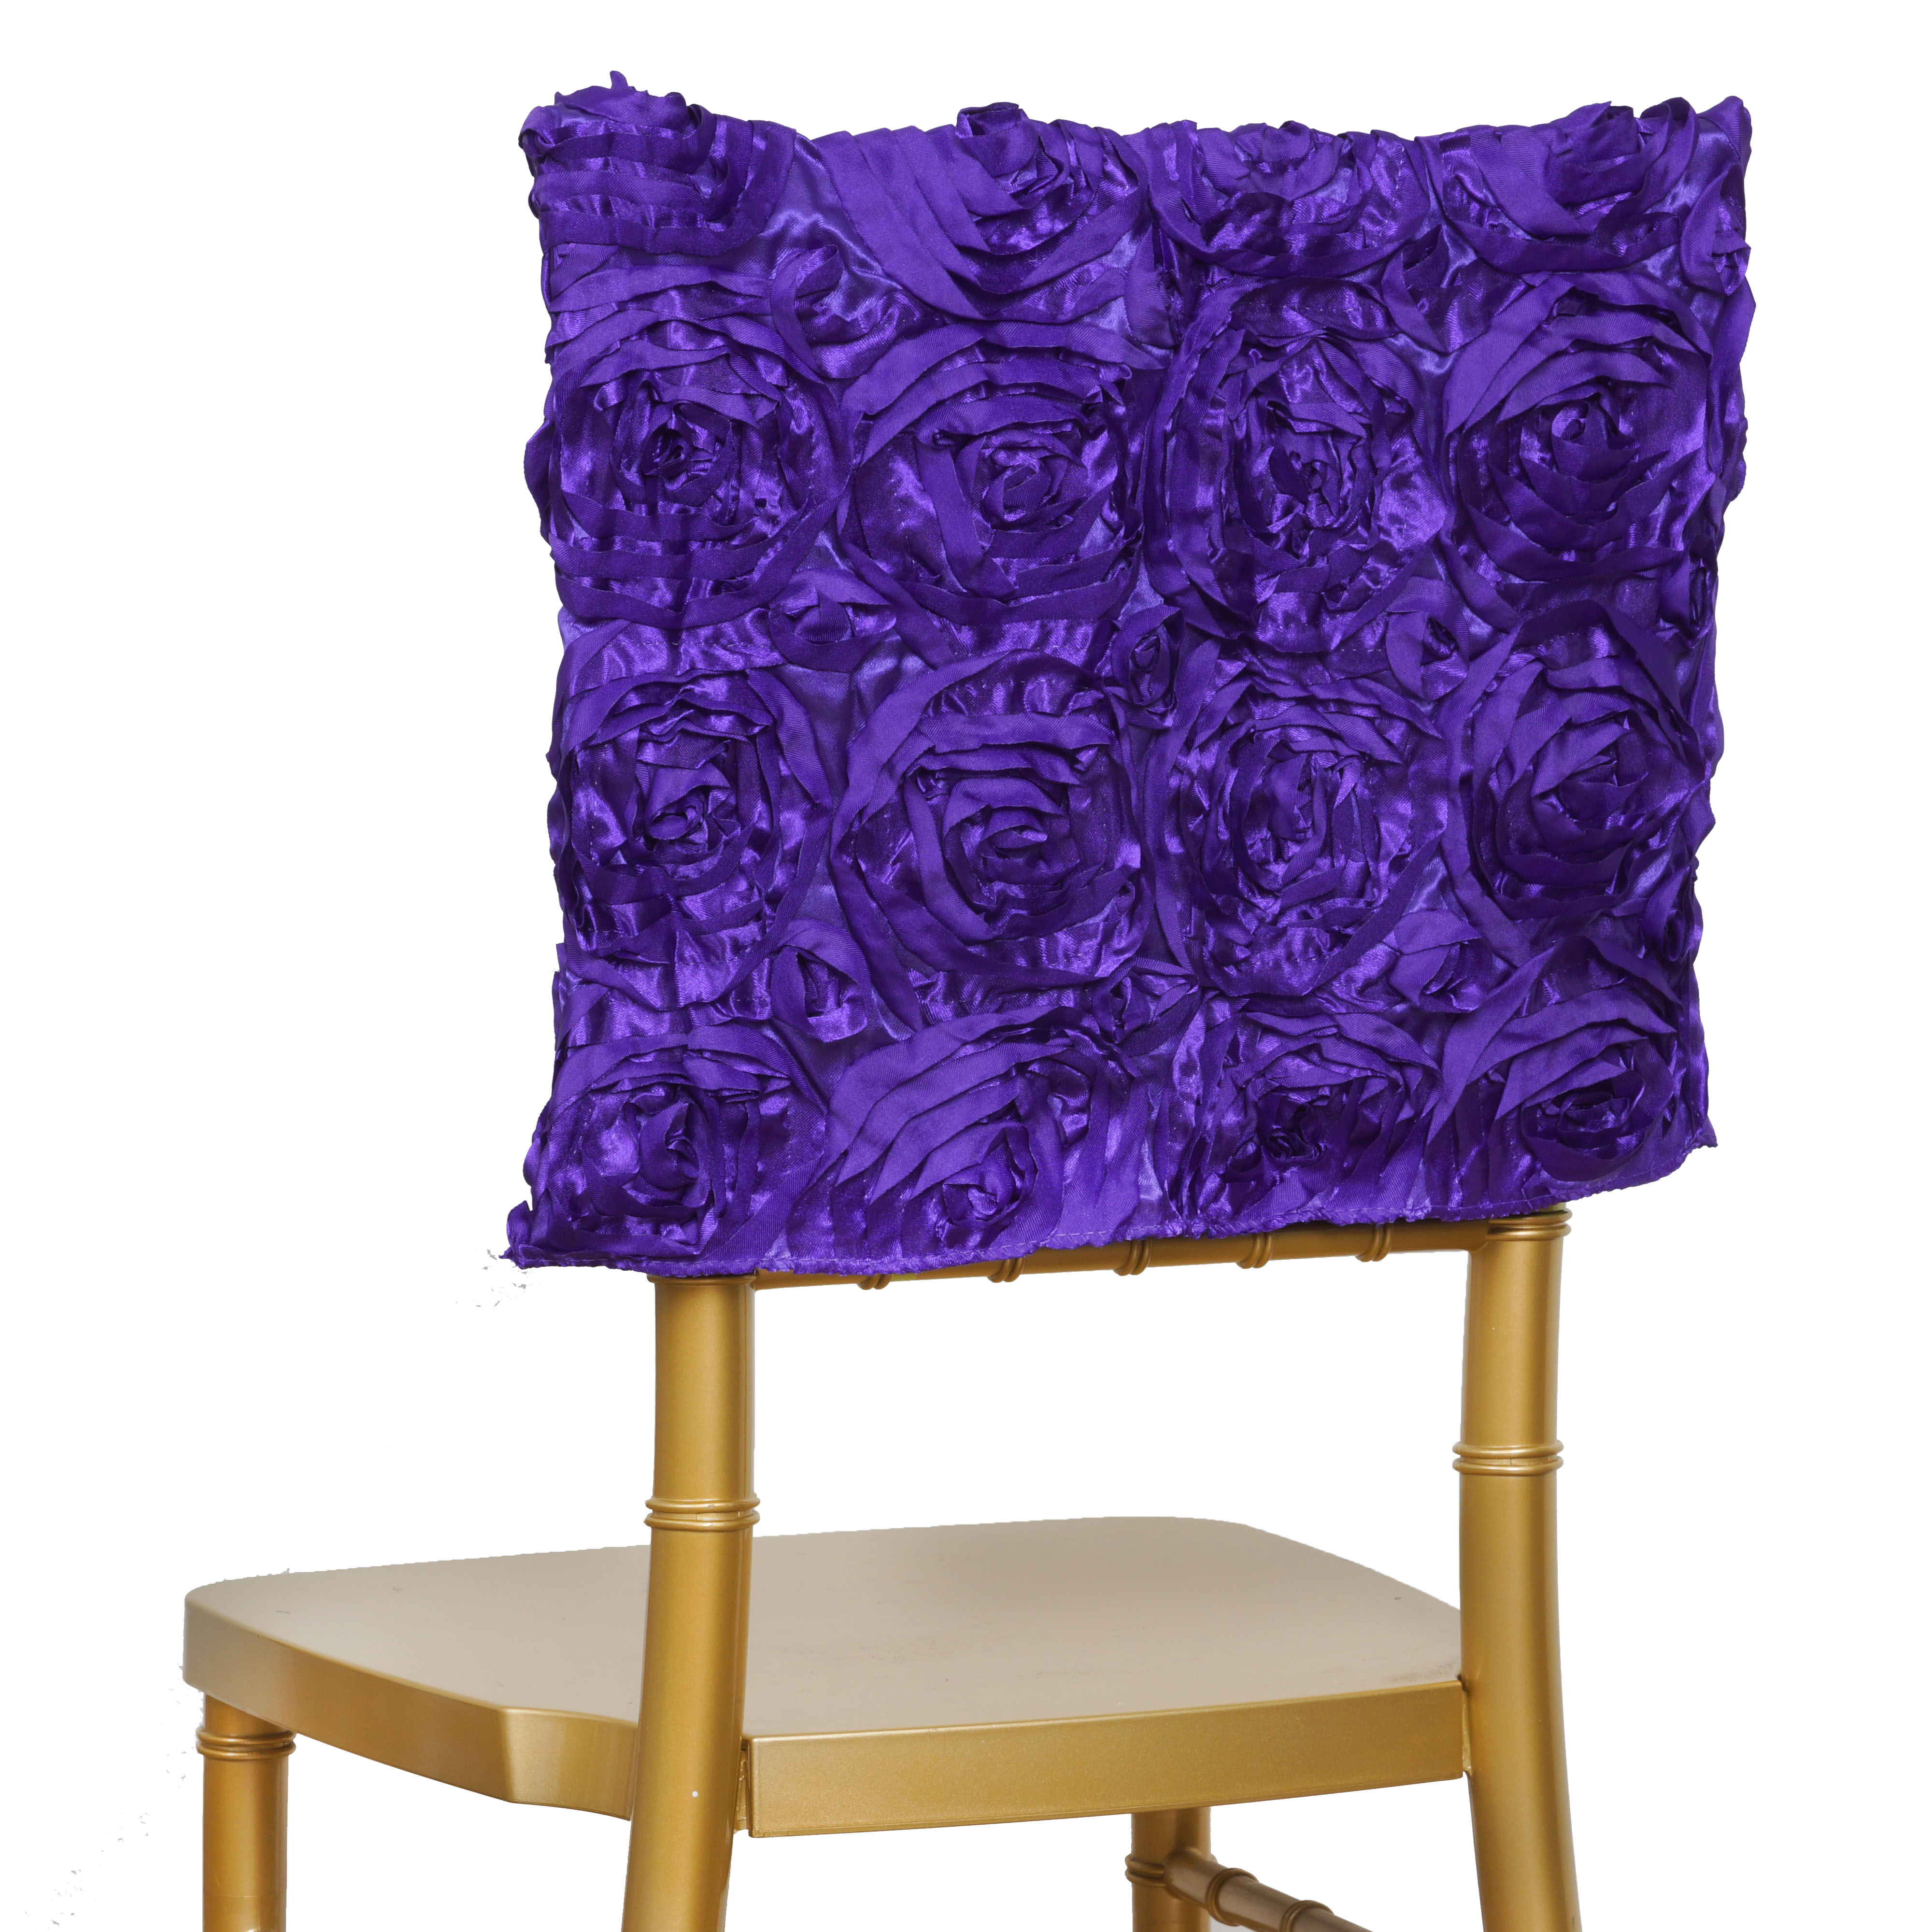 75 pcs CHAIR COVERS SQUARE TOP CAPS with RIBBON ROSES Wholesale